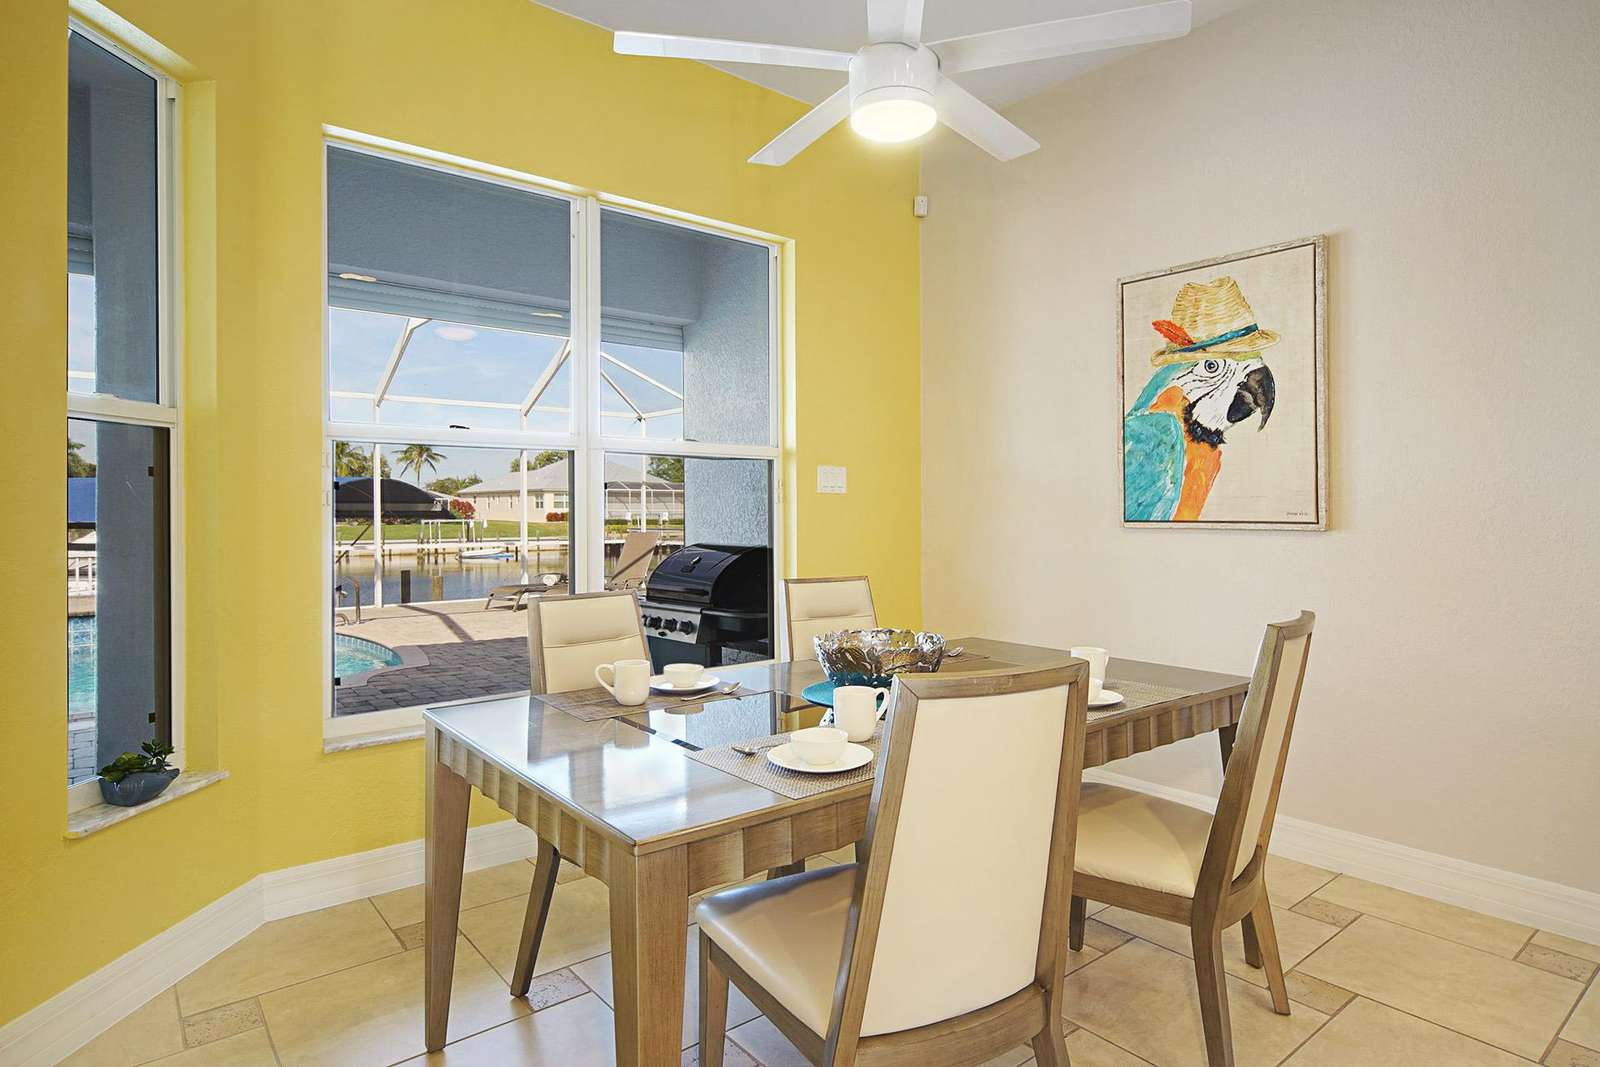 Wischis Florida Vacation Home - #VacationRentals #CapeCoral #PropertyManagement #Real Estate